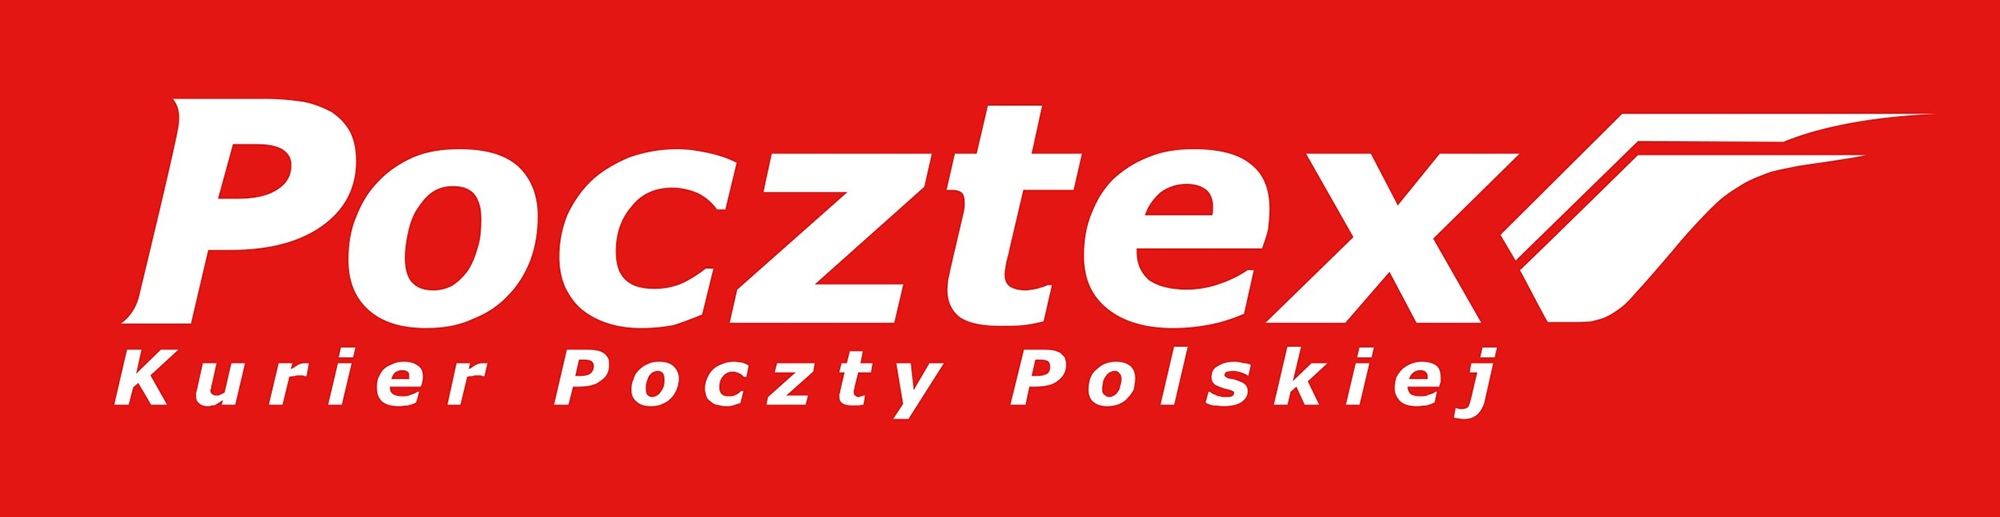 Pocztex Kurier